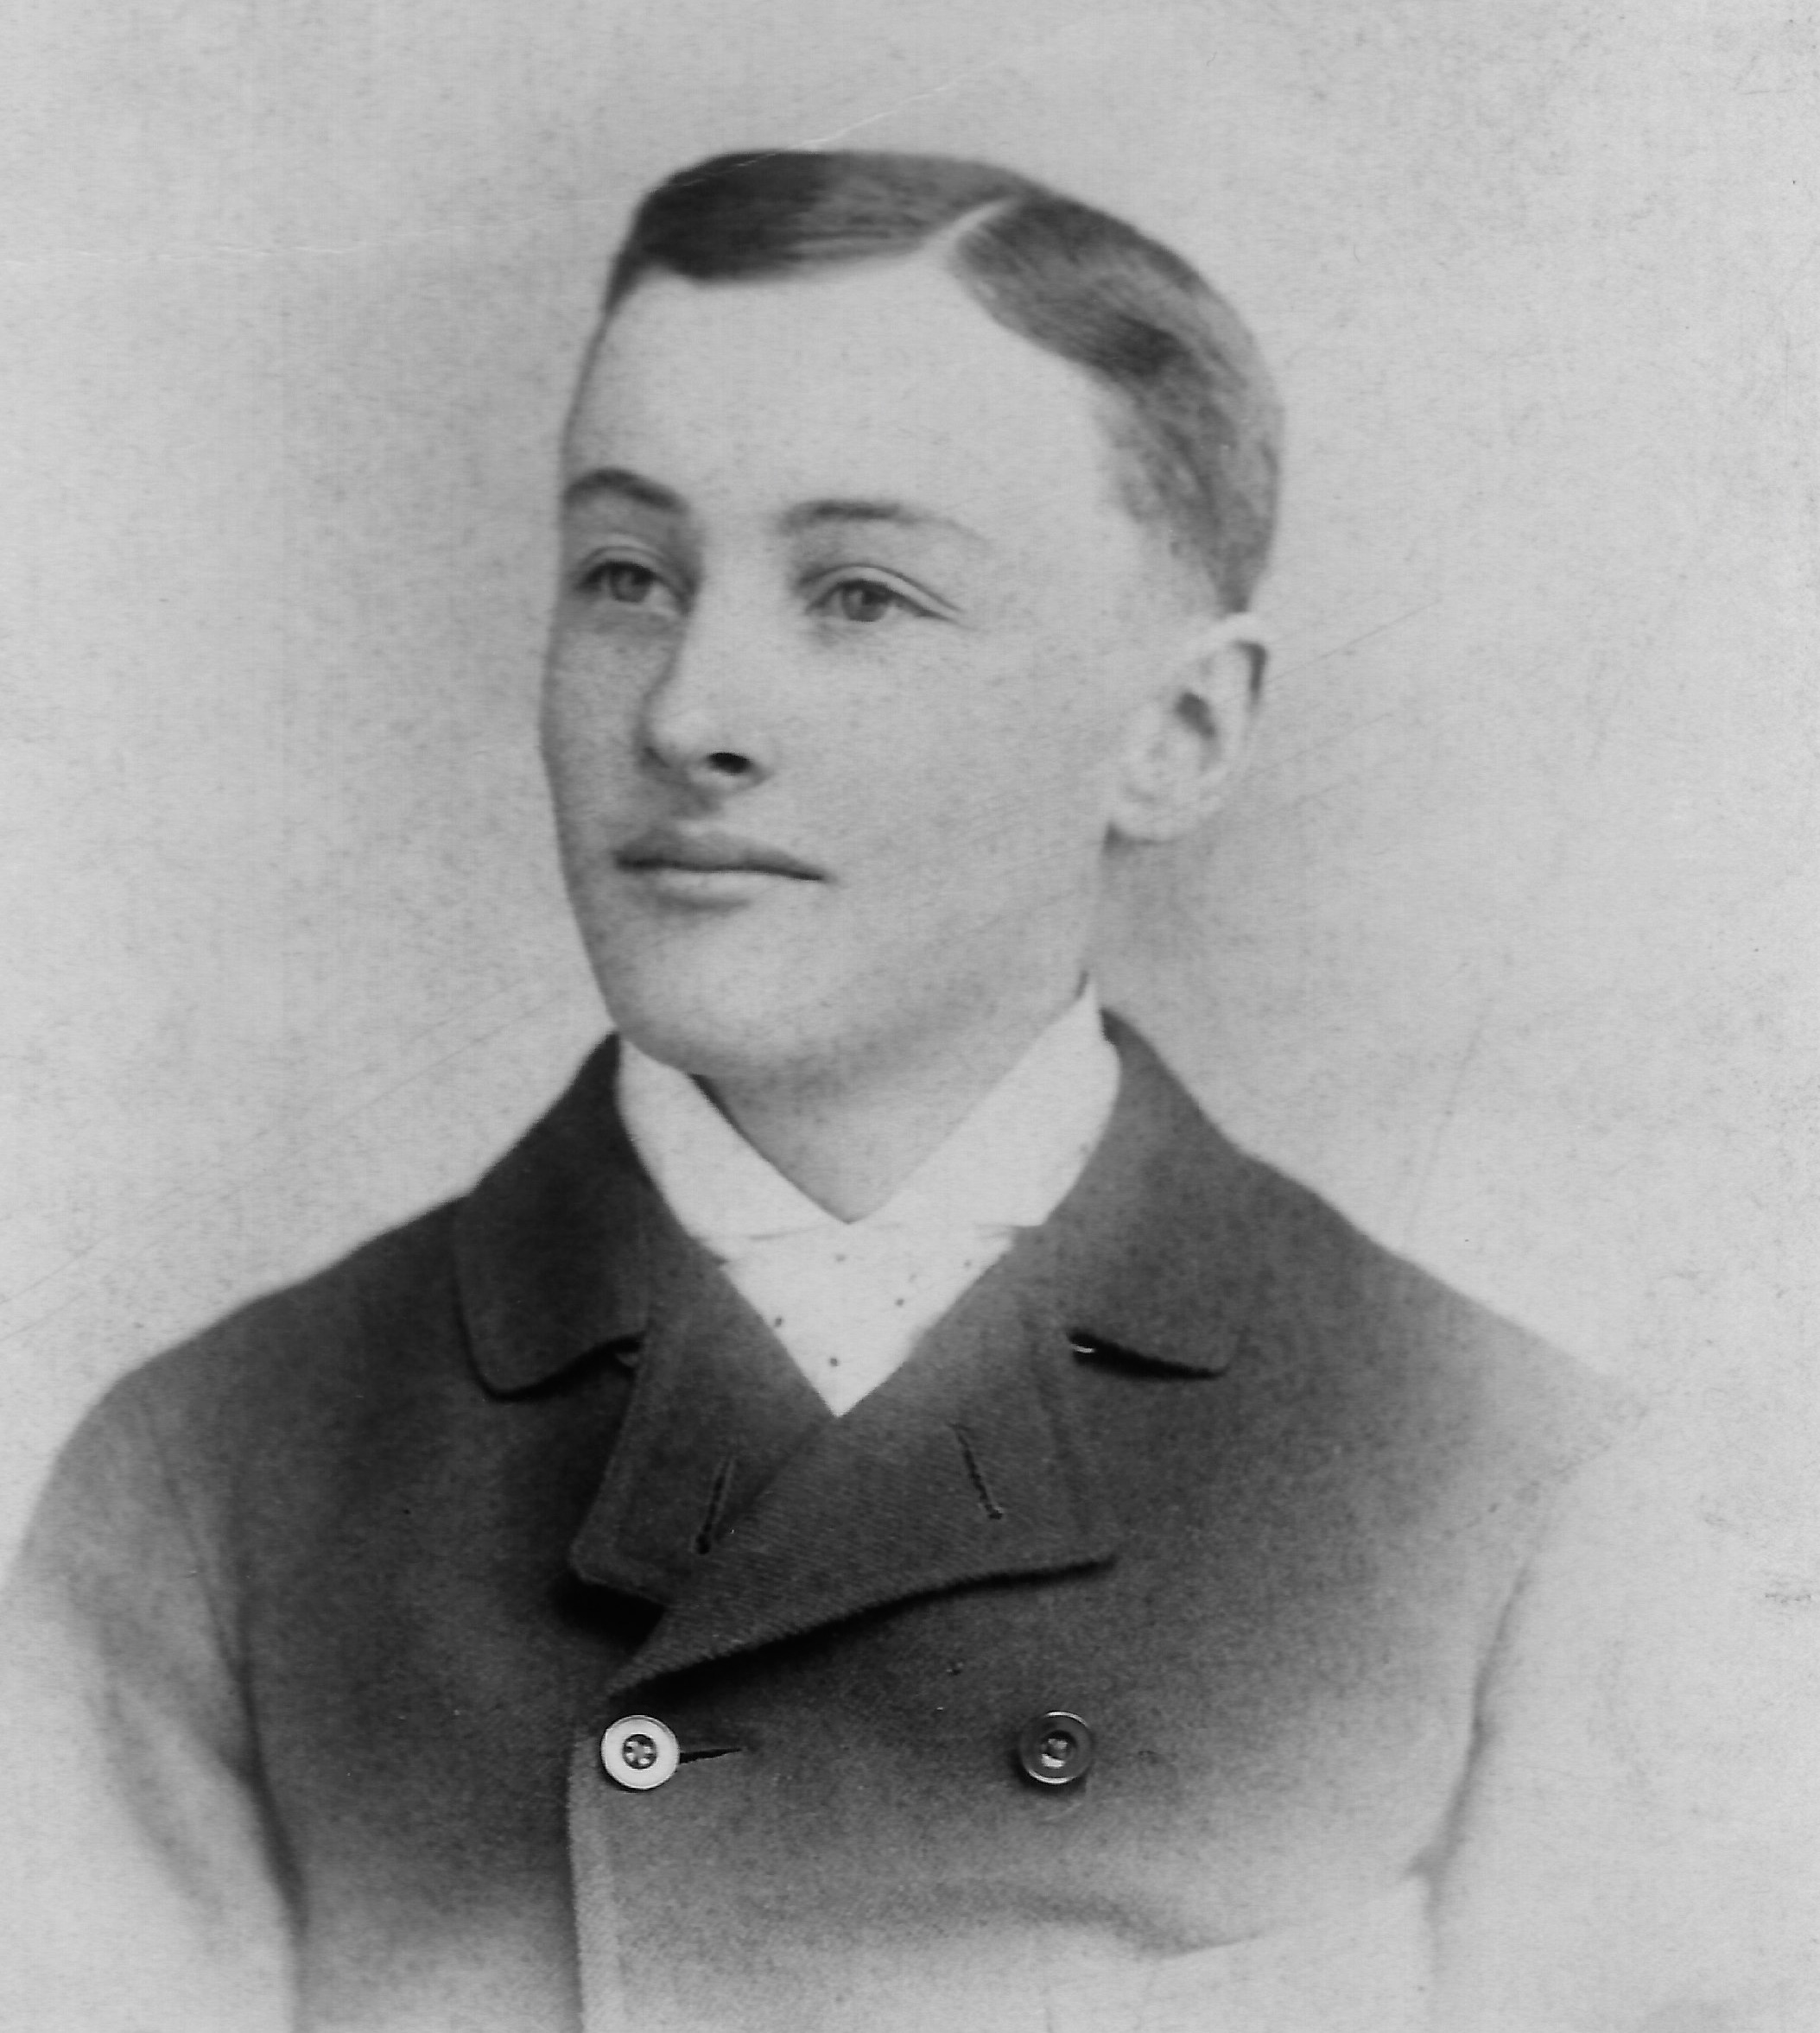 Photographic portrait of George Foote Foss at the age of 21